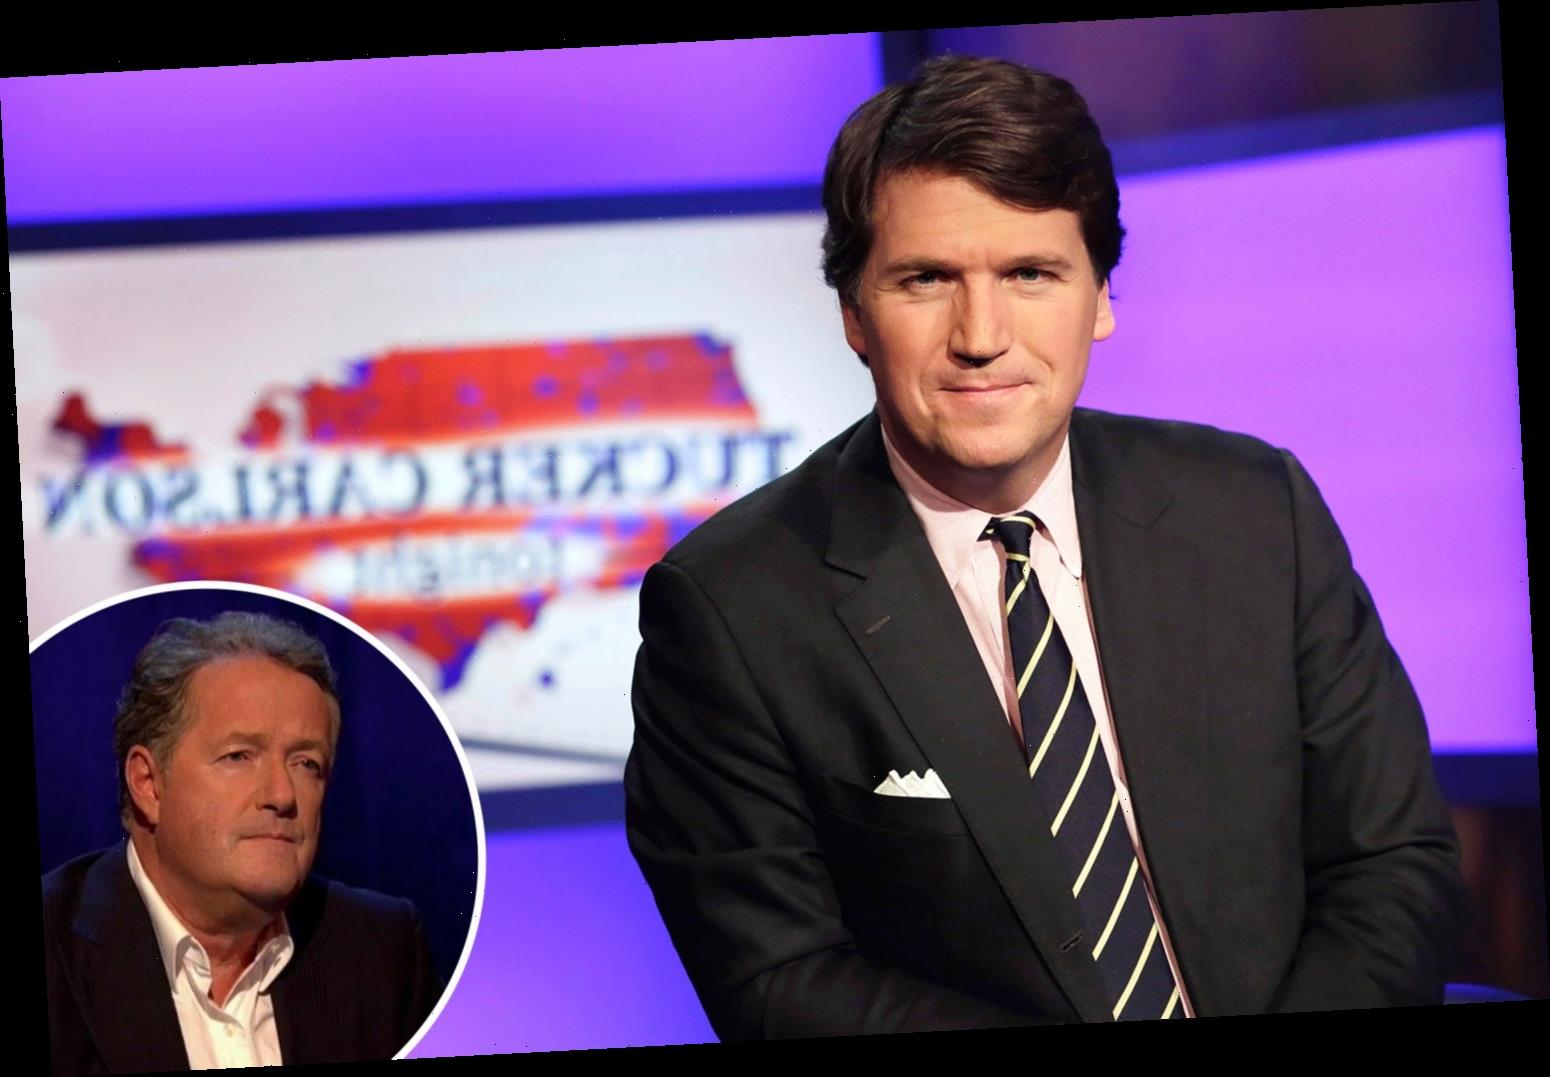 What time is Piers Morgan's interview with Tucker Carlson tonight?